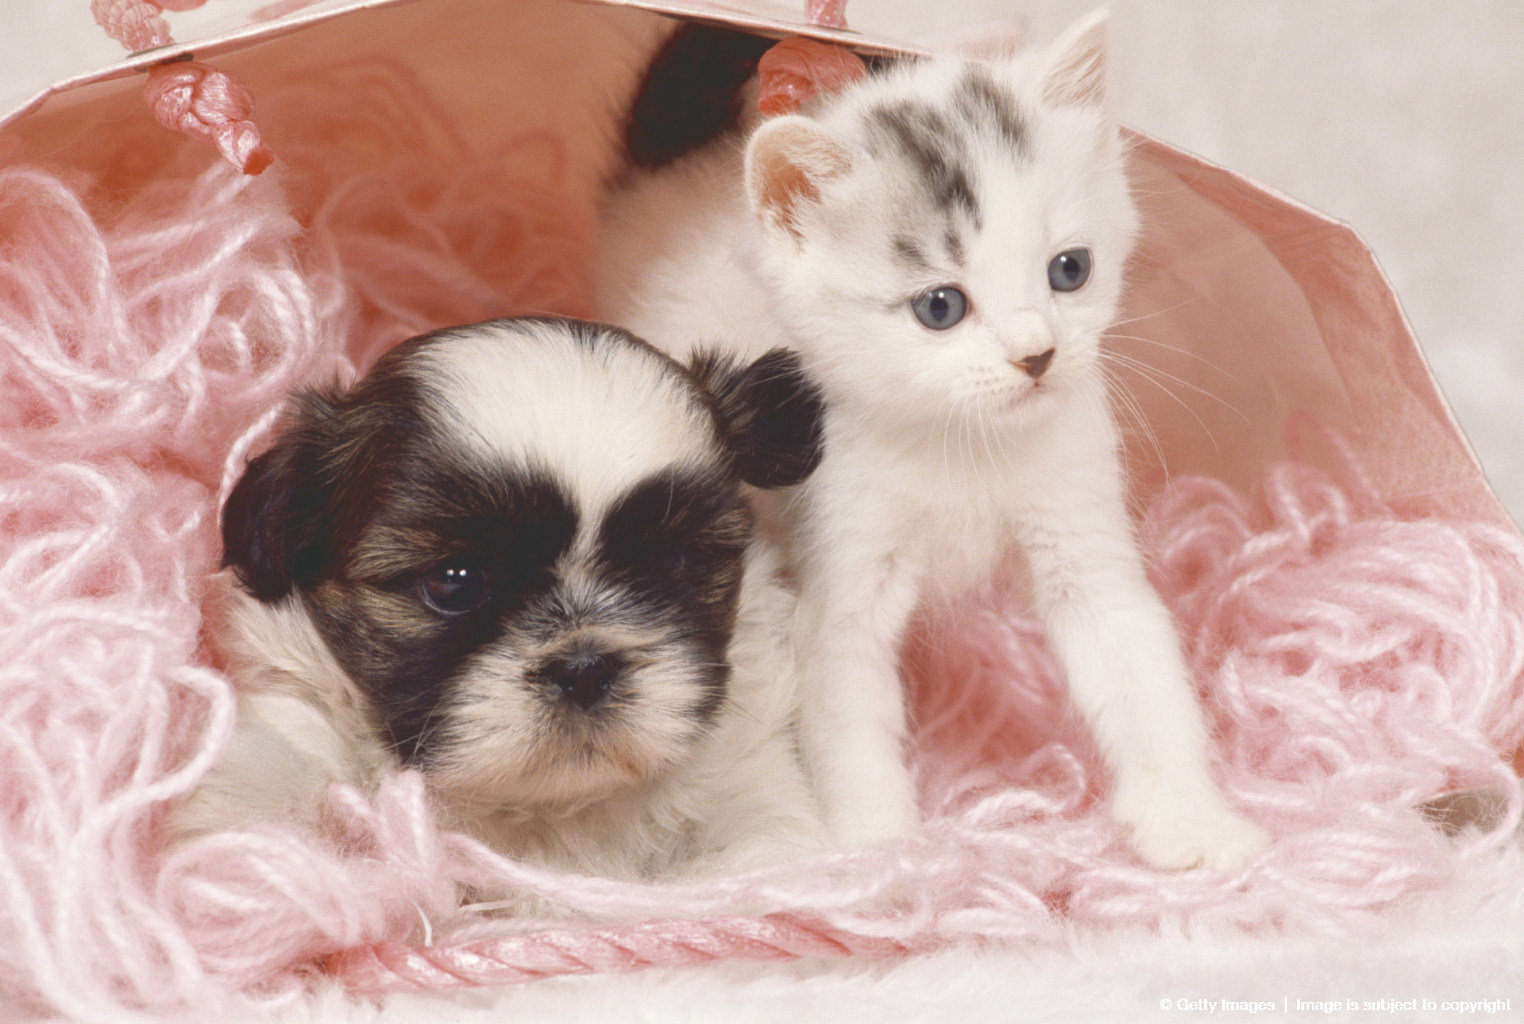 Puppy and Baby Cat